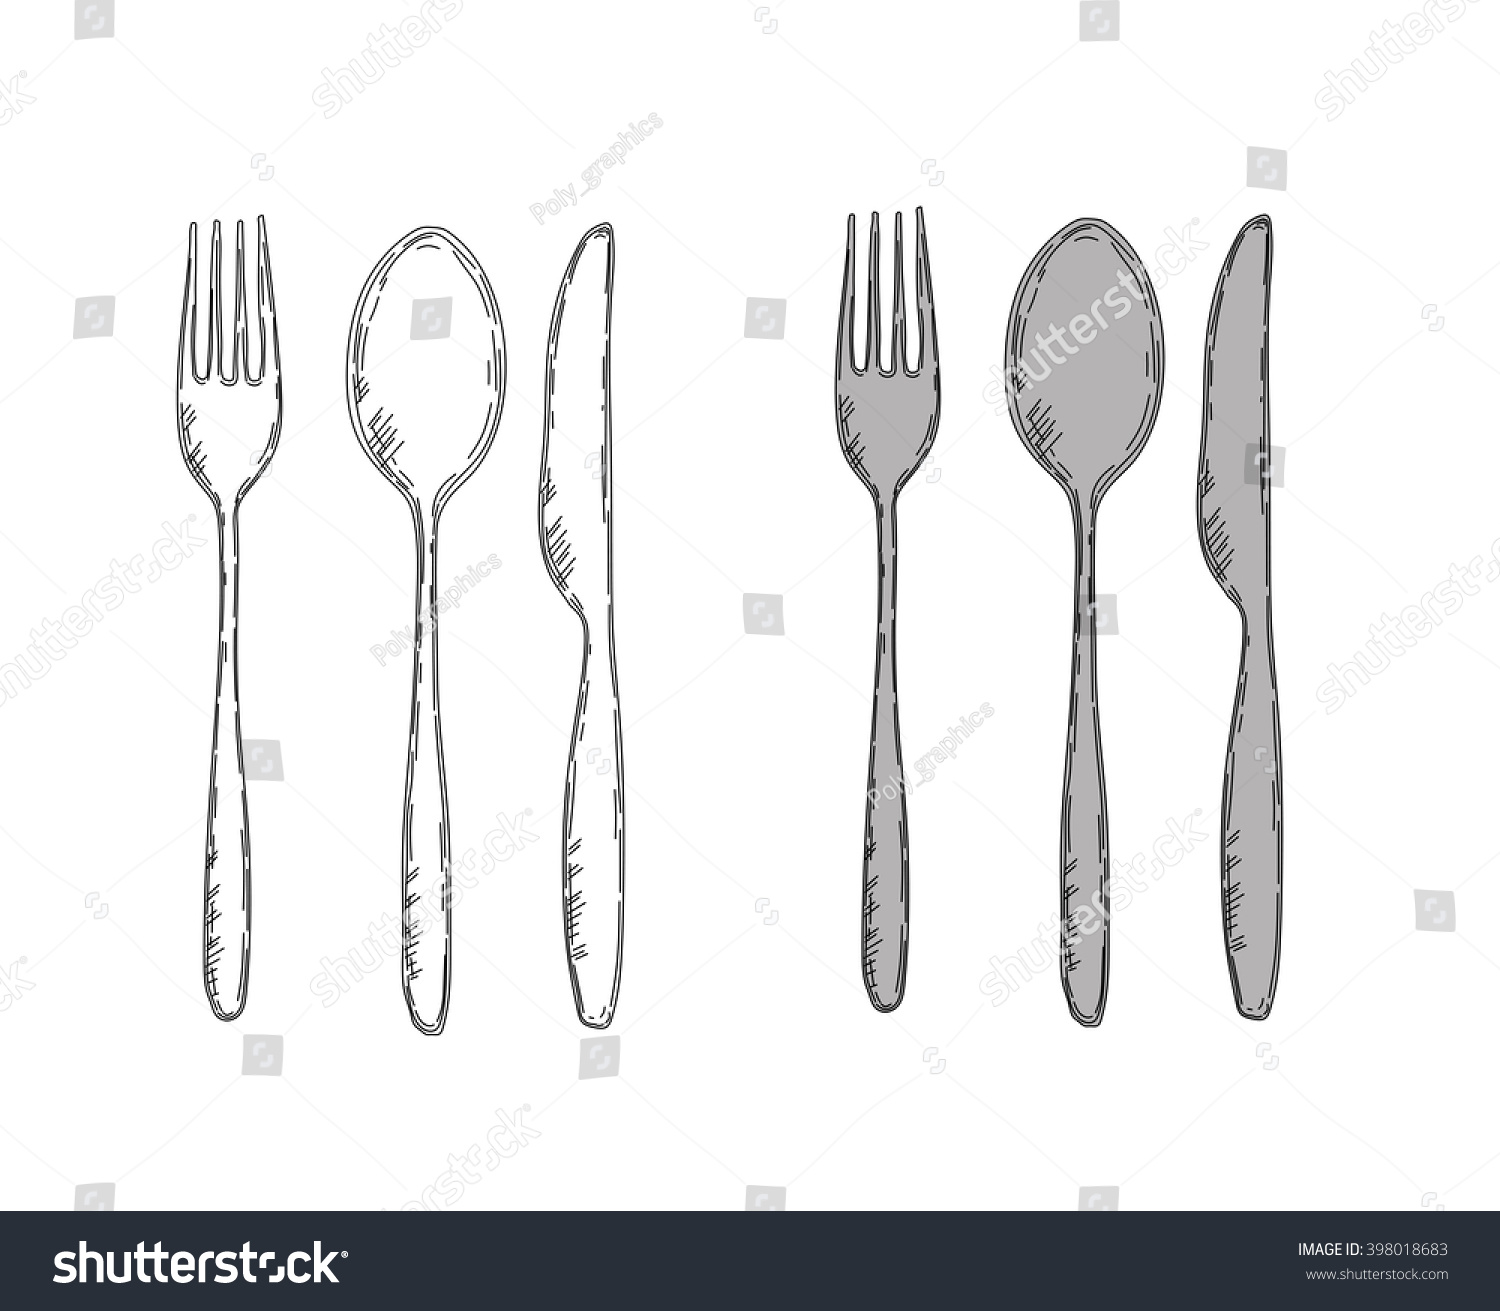 Vector Illustration Of Spoon Fork And Knife Easy To Change Colors